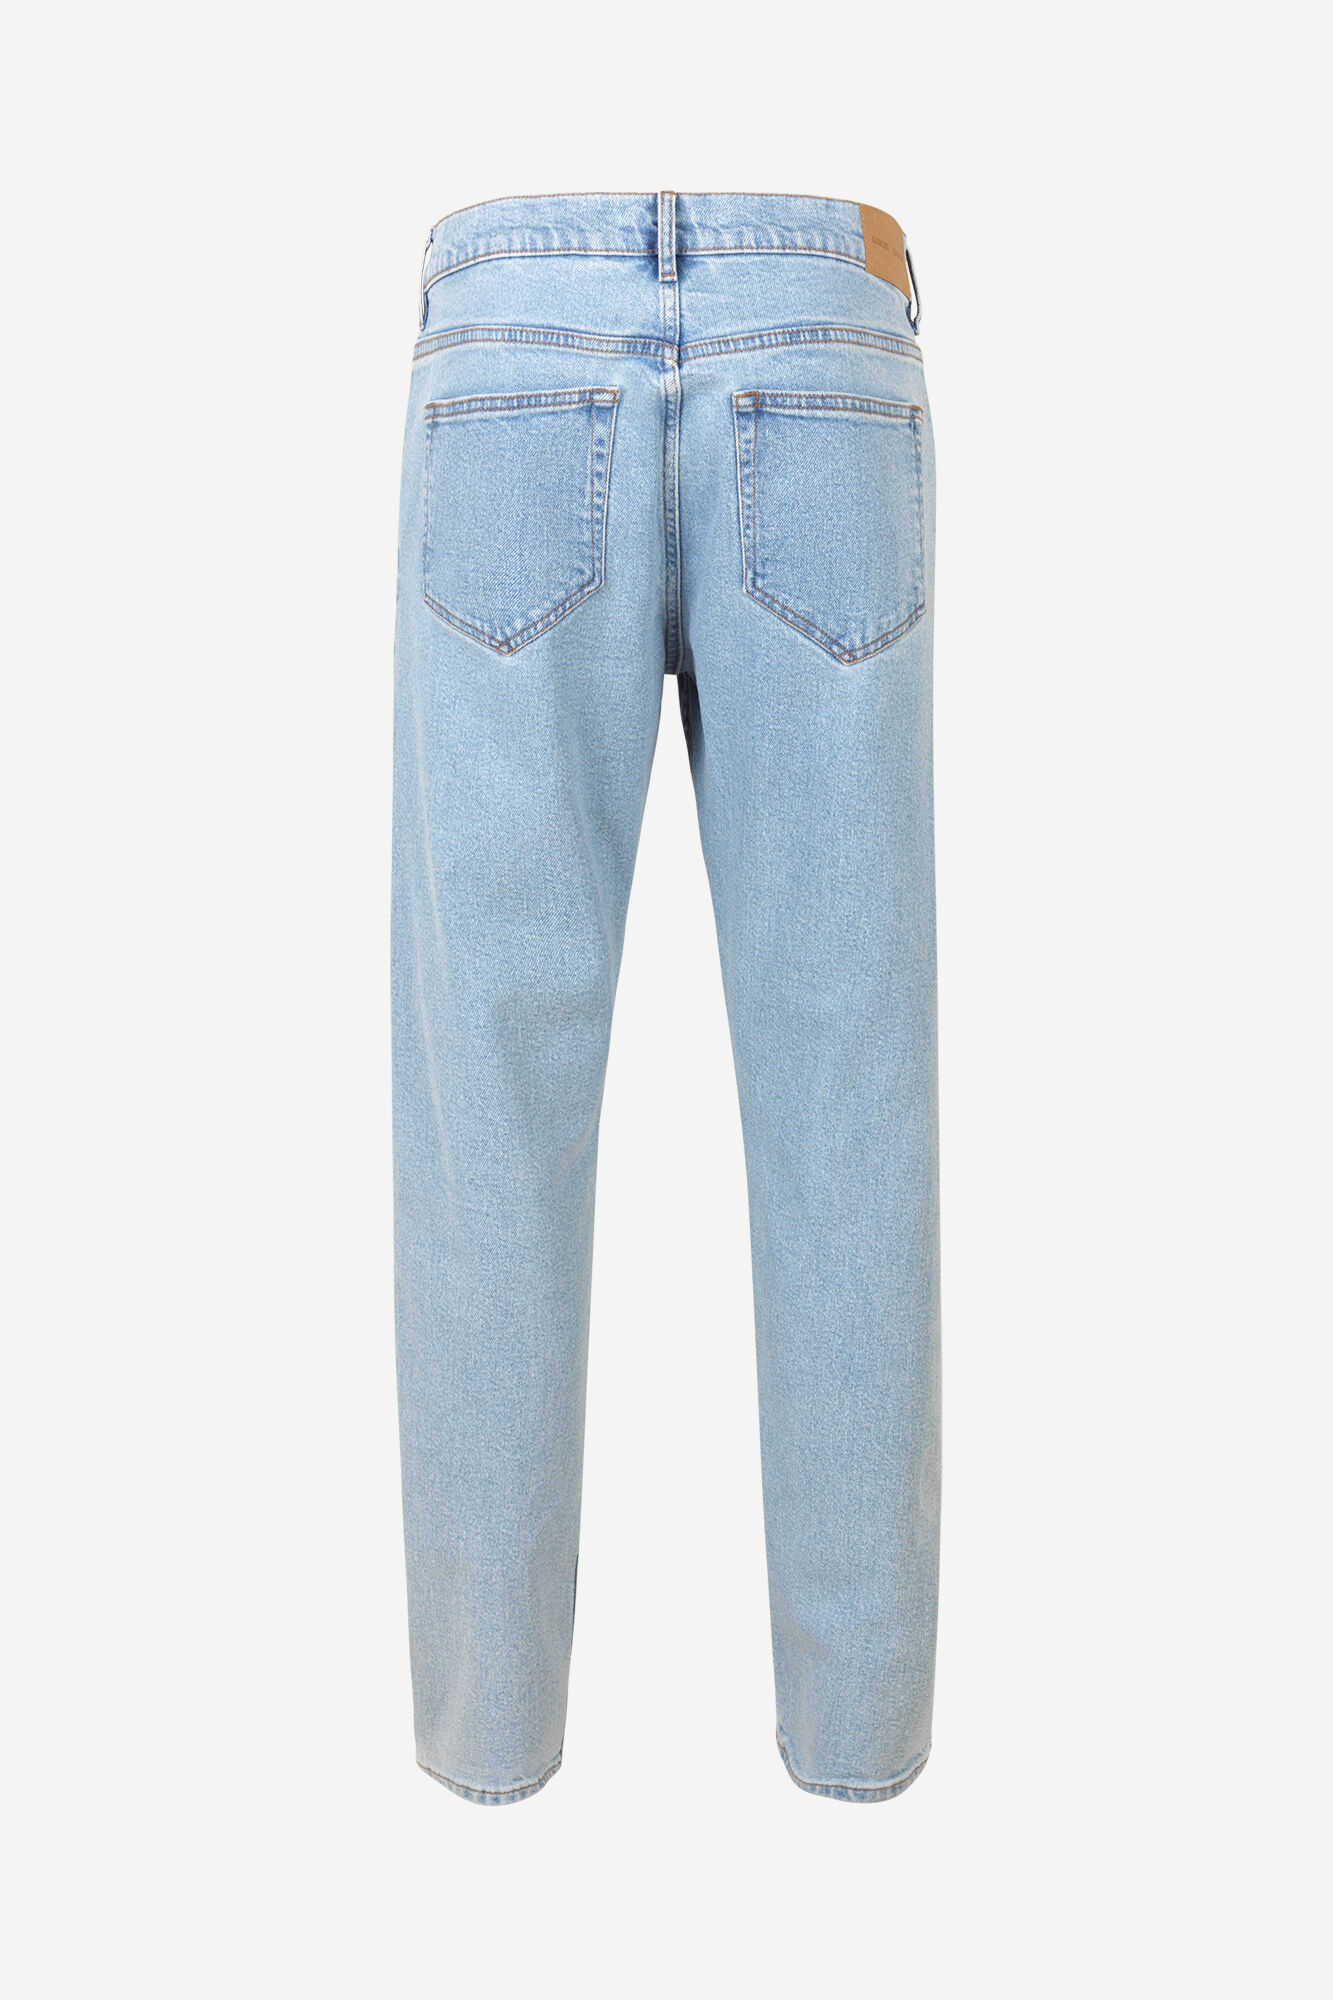 Cosmo jeans 12718, MELTING ICE